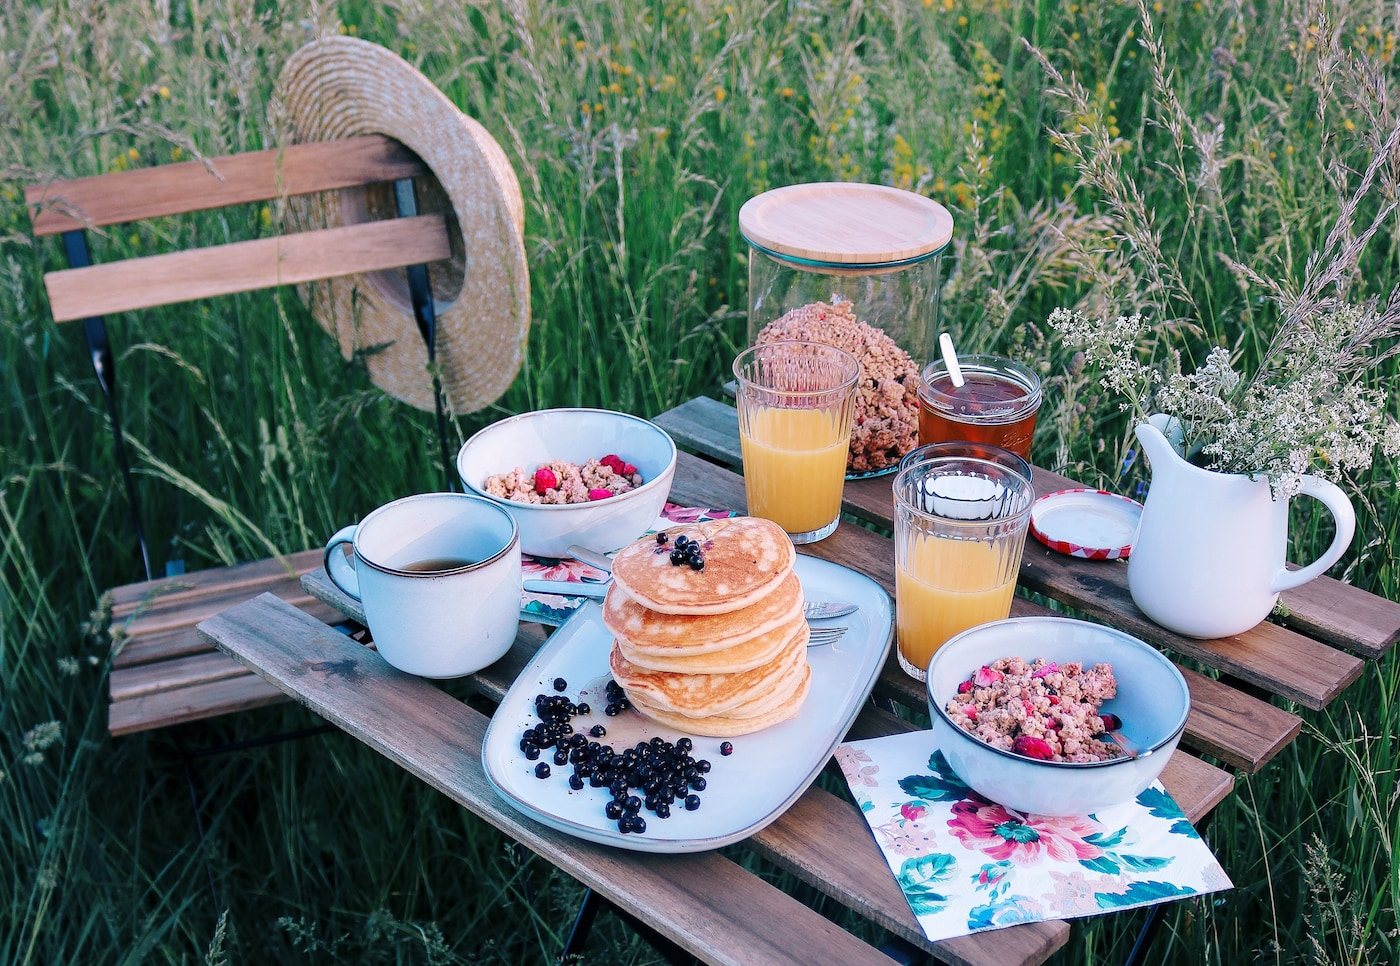 Create your perfect summer breakfast in the great outdoors